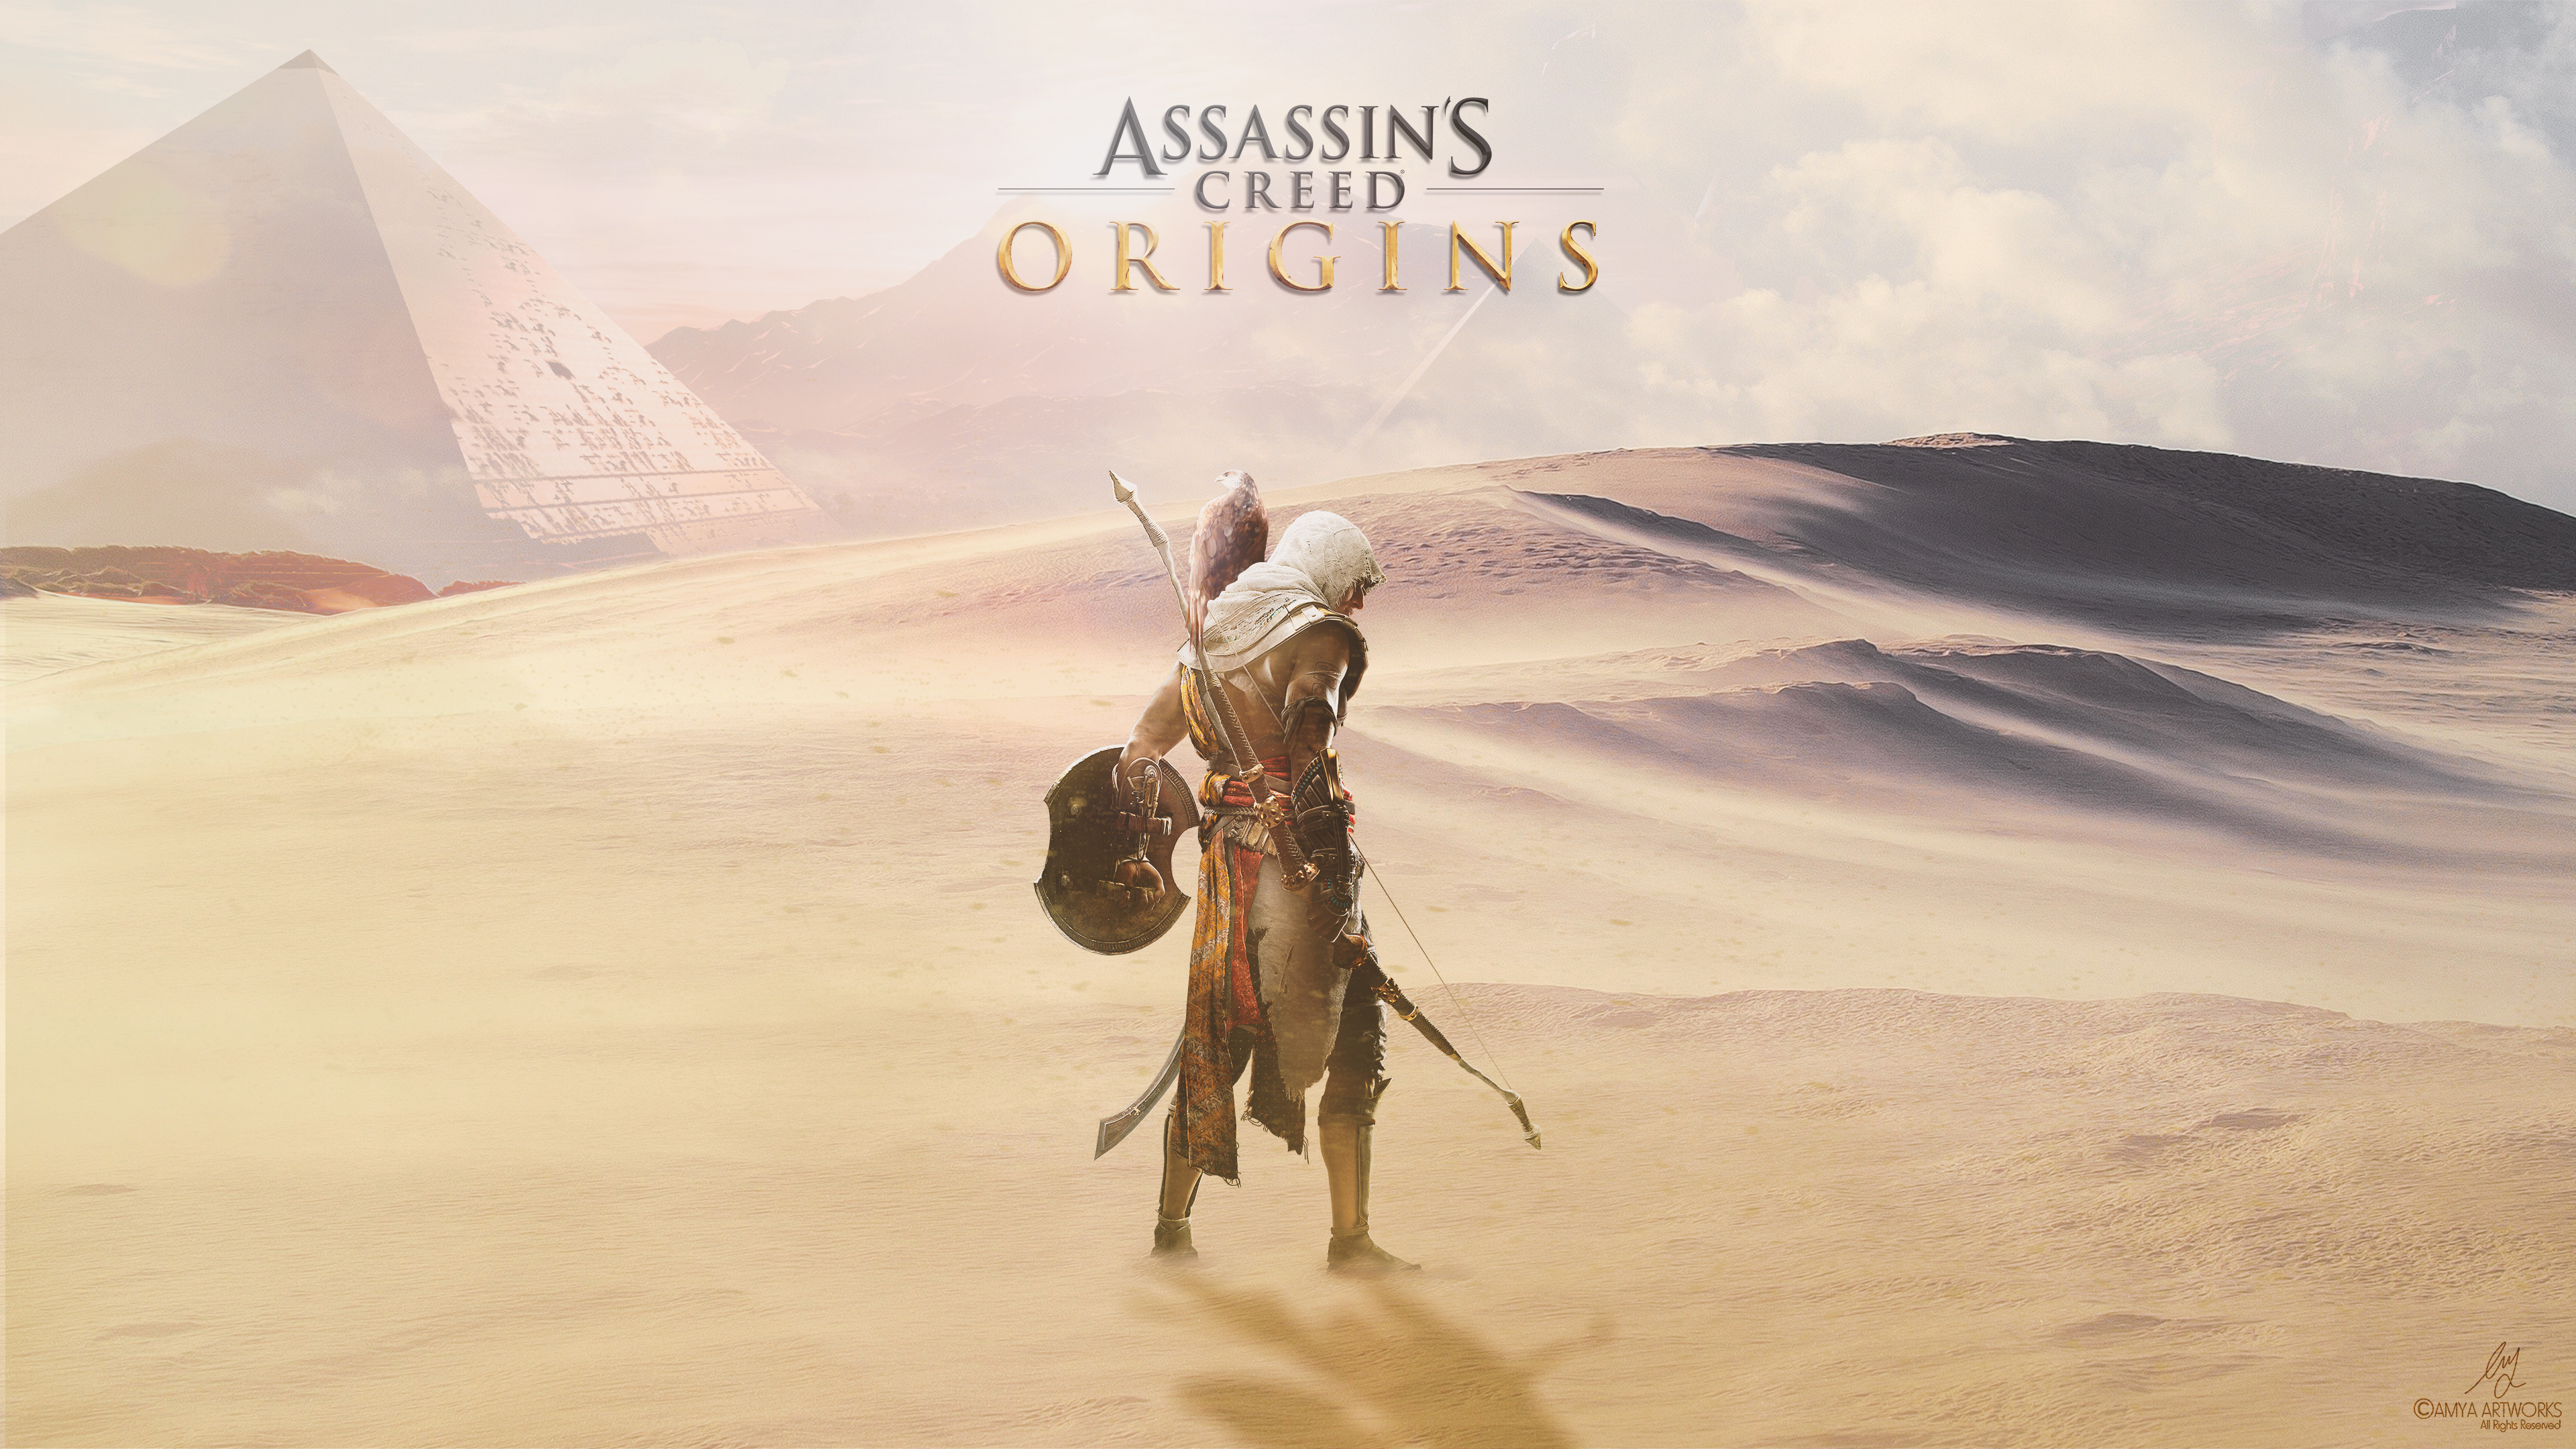 Assassins Creed Origins Artwork 4k Hd Games 4k Wallpapers Images Backgrounds Photos And Pictures